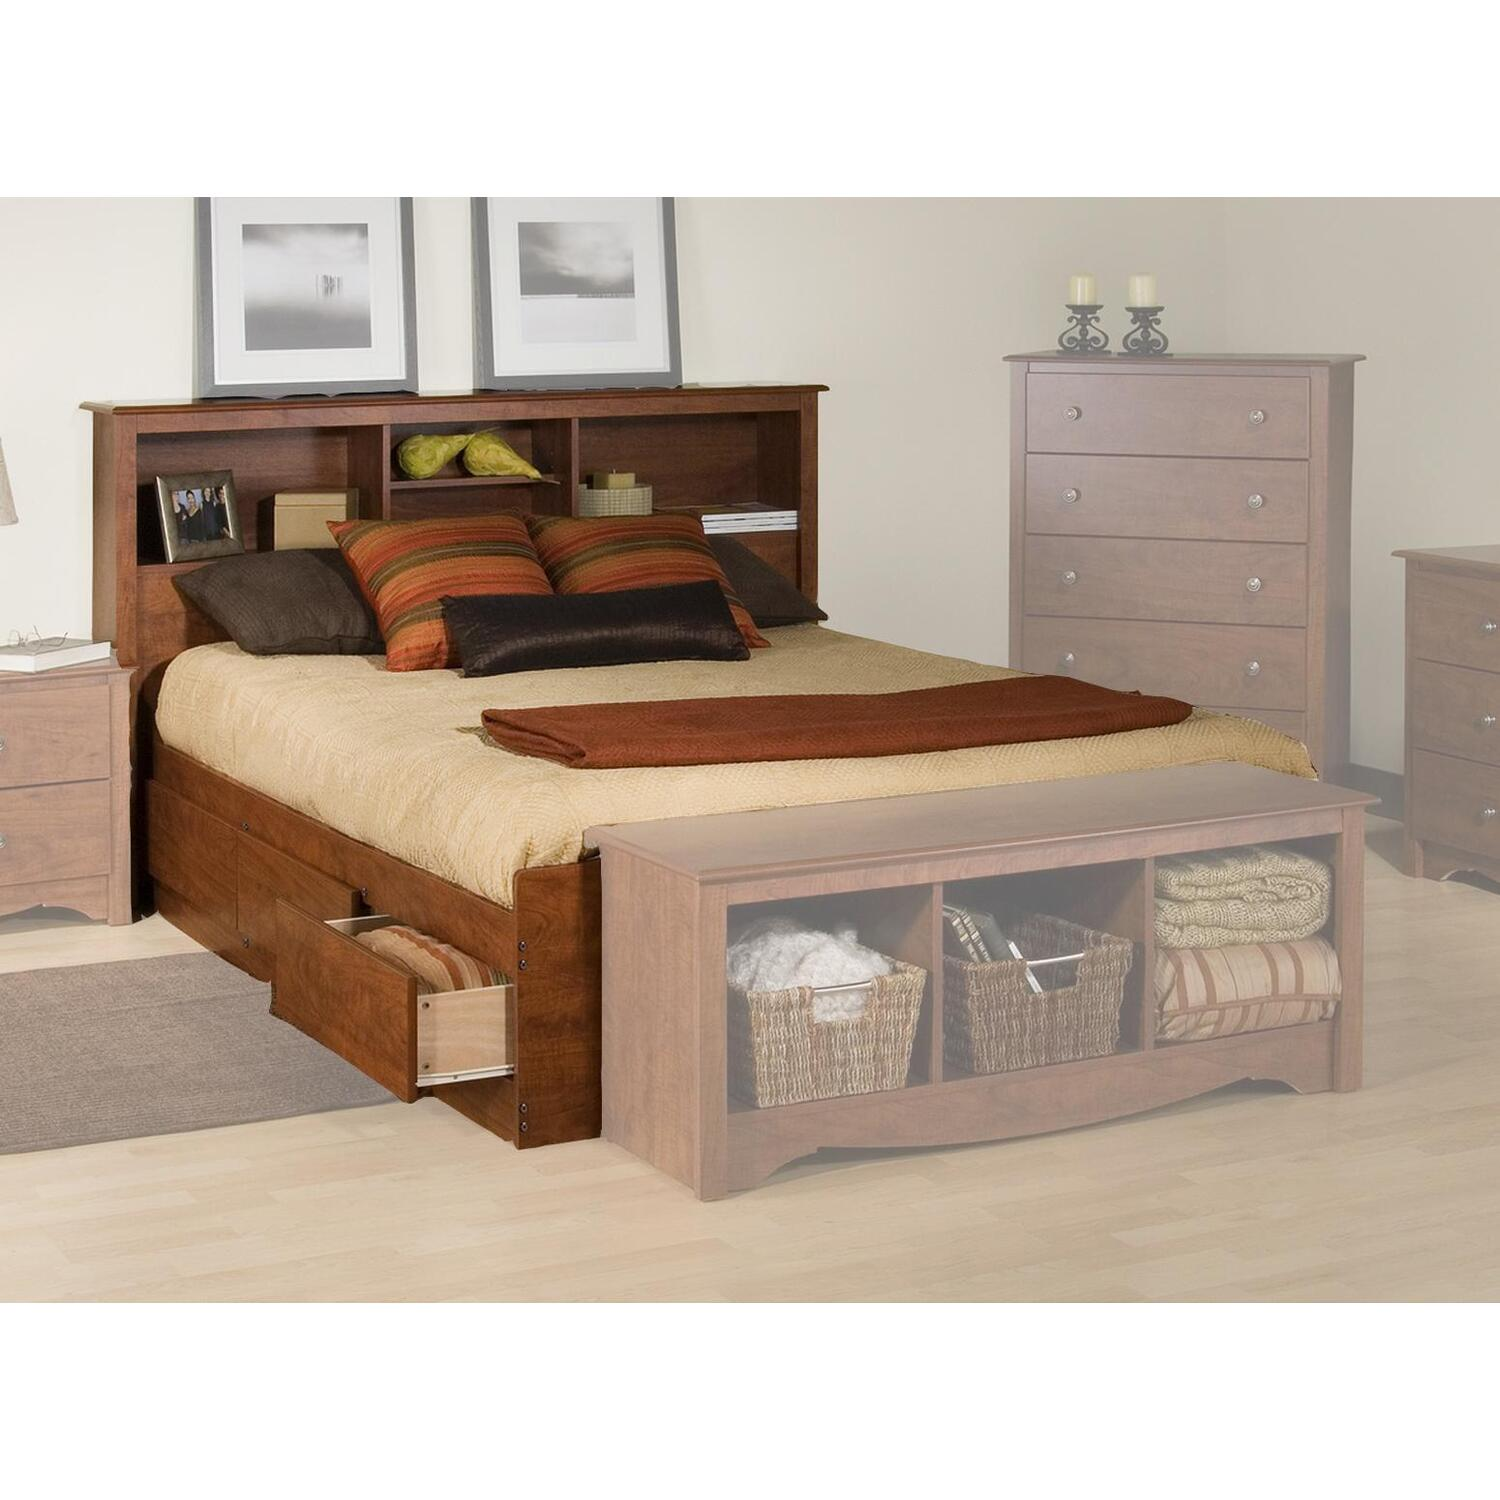 Prepac platform storage bed w bookcase headboard by oj for Bookshelf bed headboard